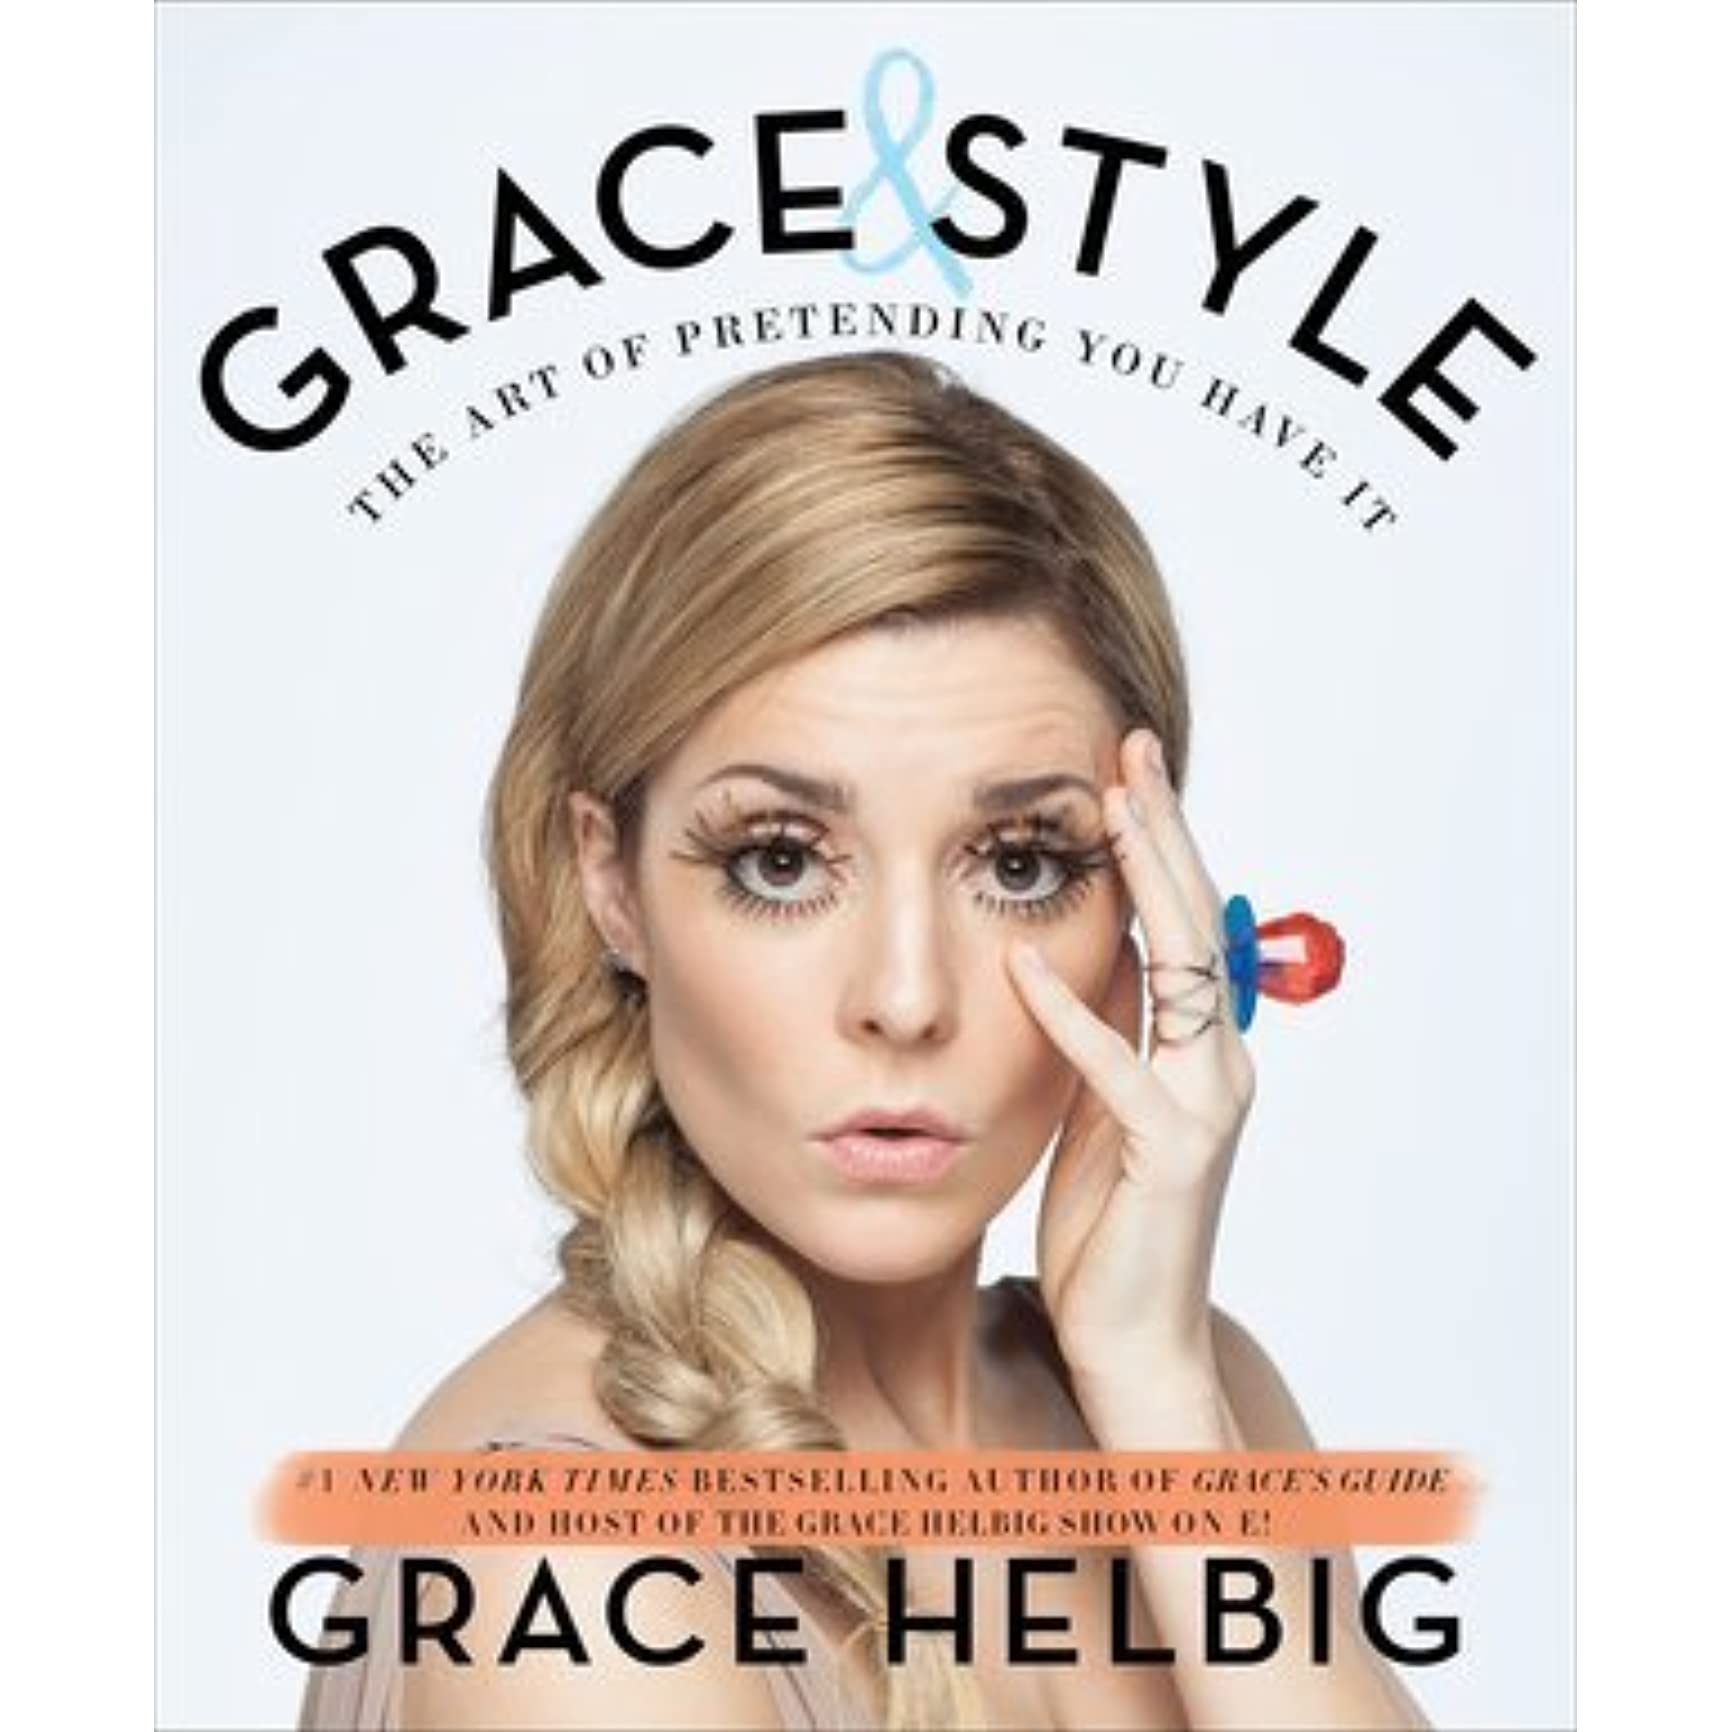 Grace \u0026 Style: The Art of Pretending You Have It by Grace